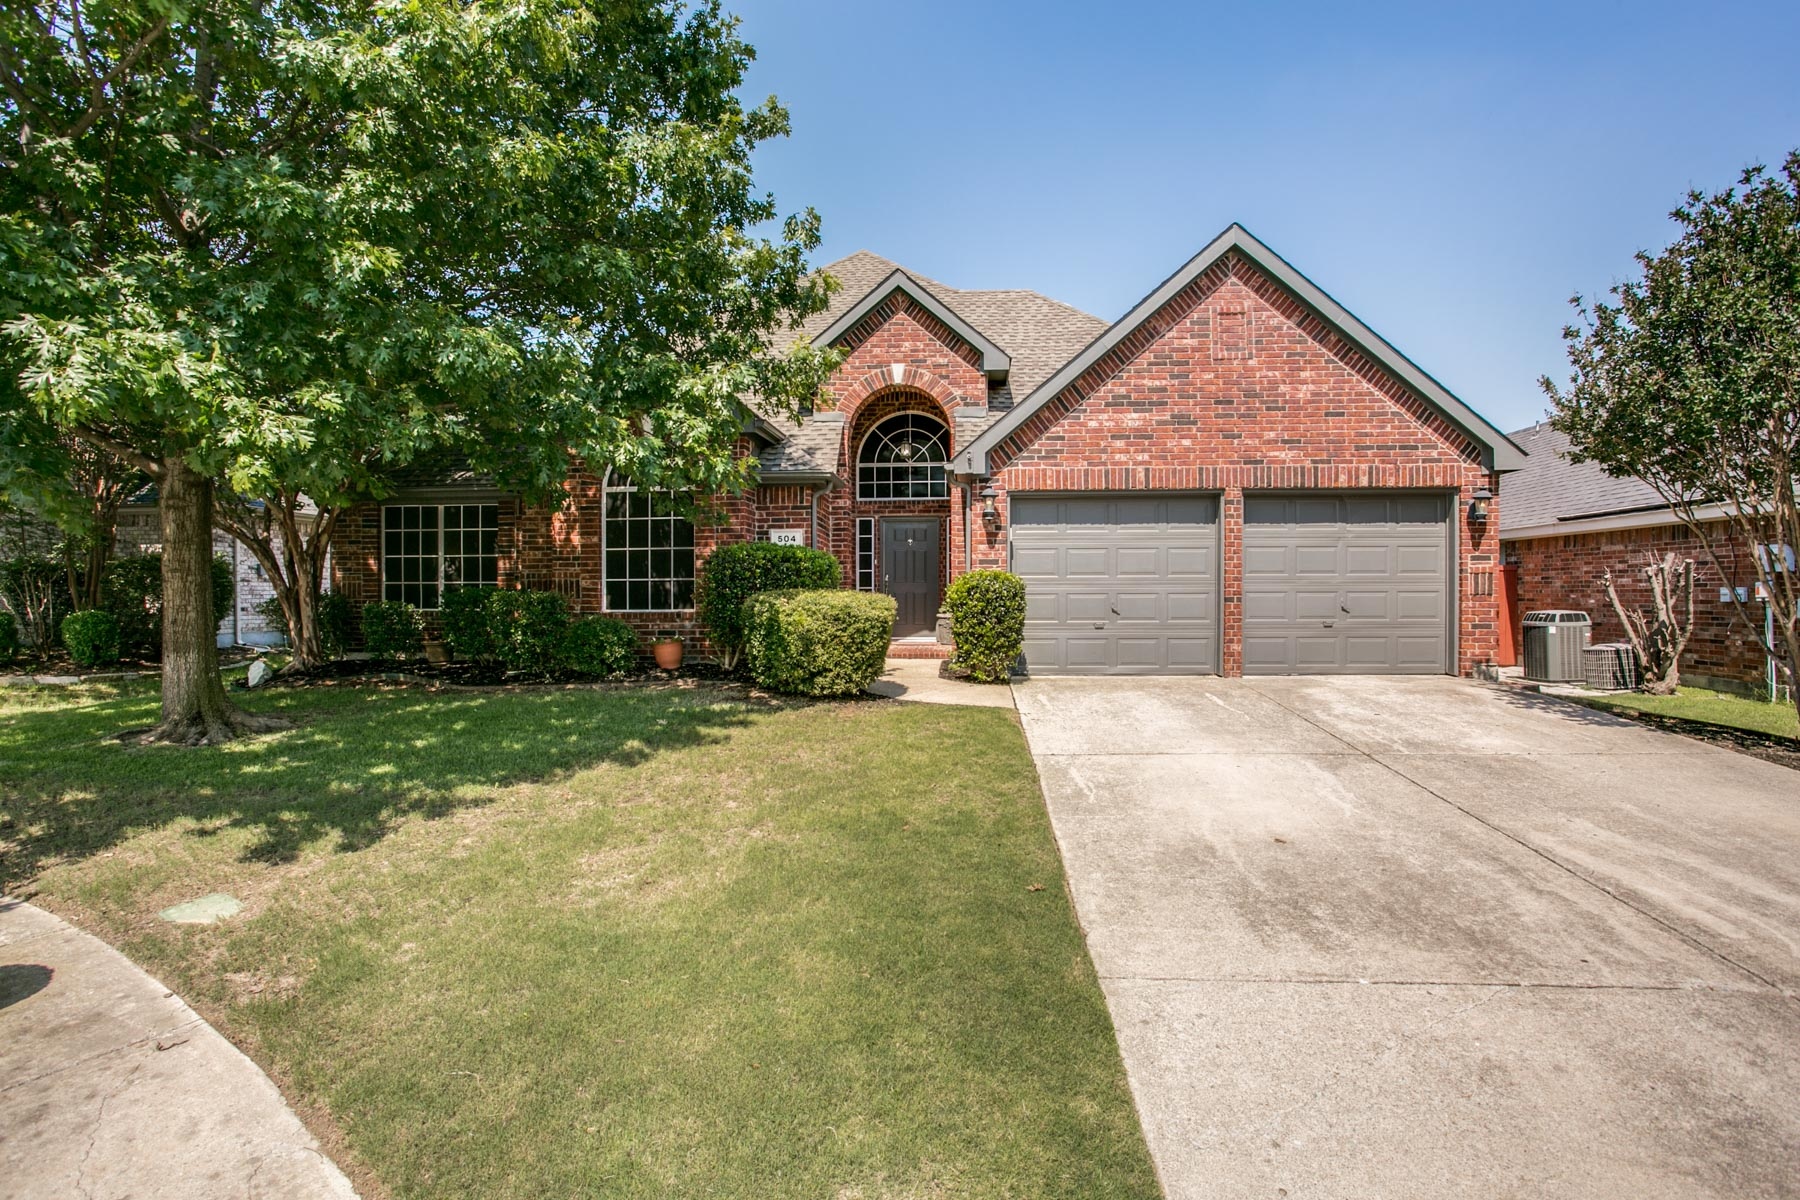 Maison unifamiliale pour l Vente à Fresh and Open Single Story Gem 504 Rookery Ct McKinney, Texas, 75070 États-Unis